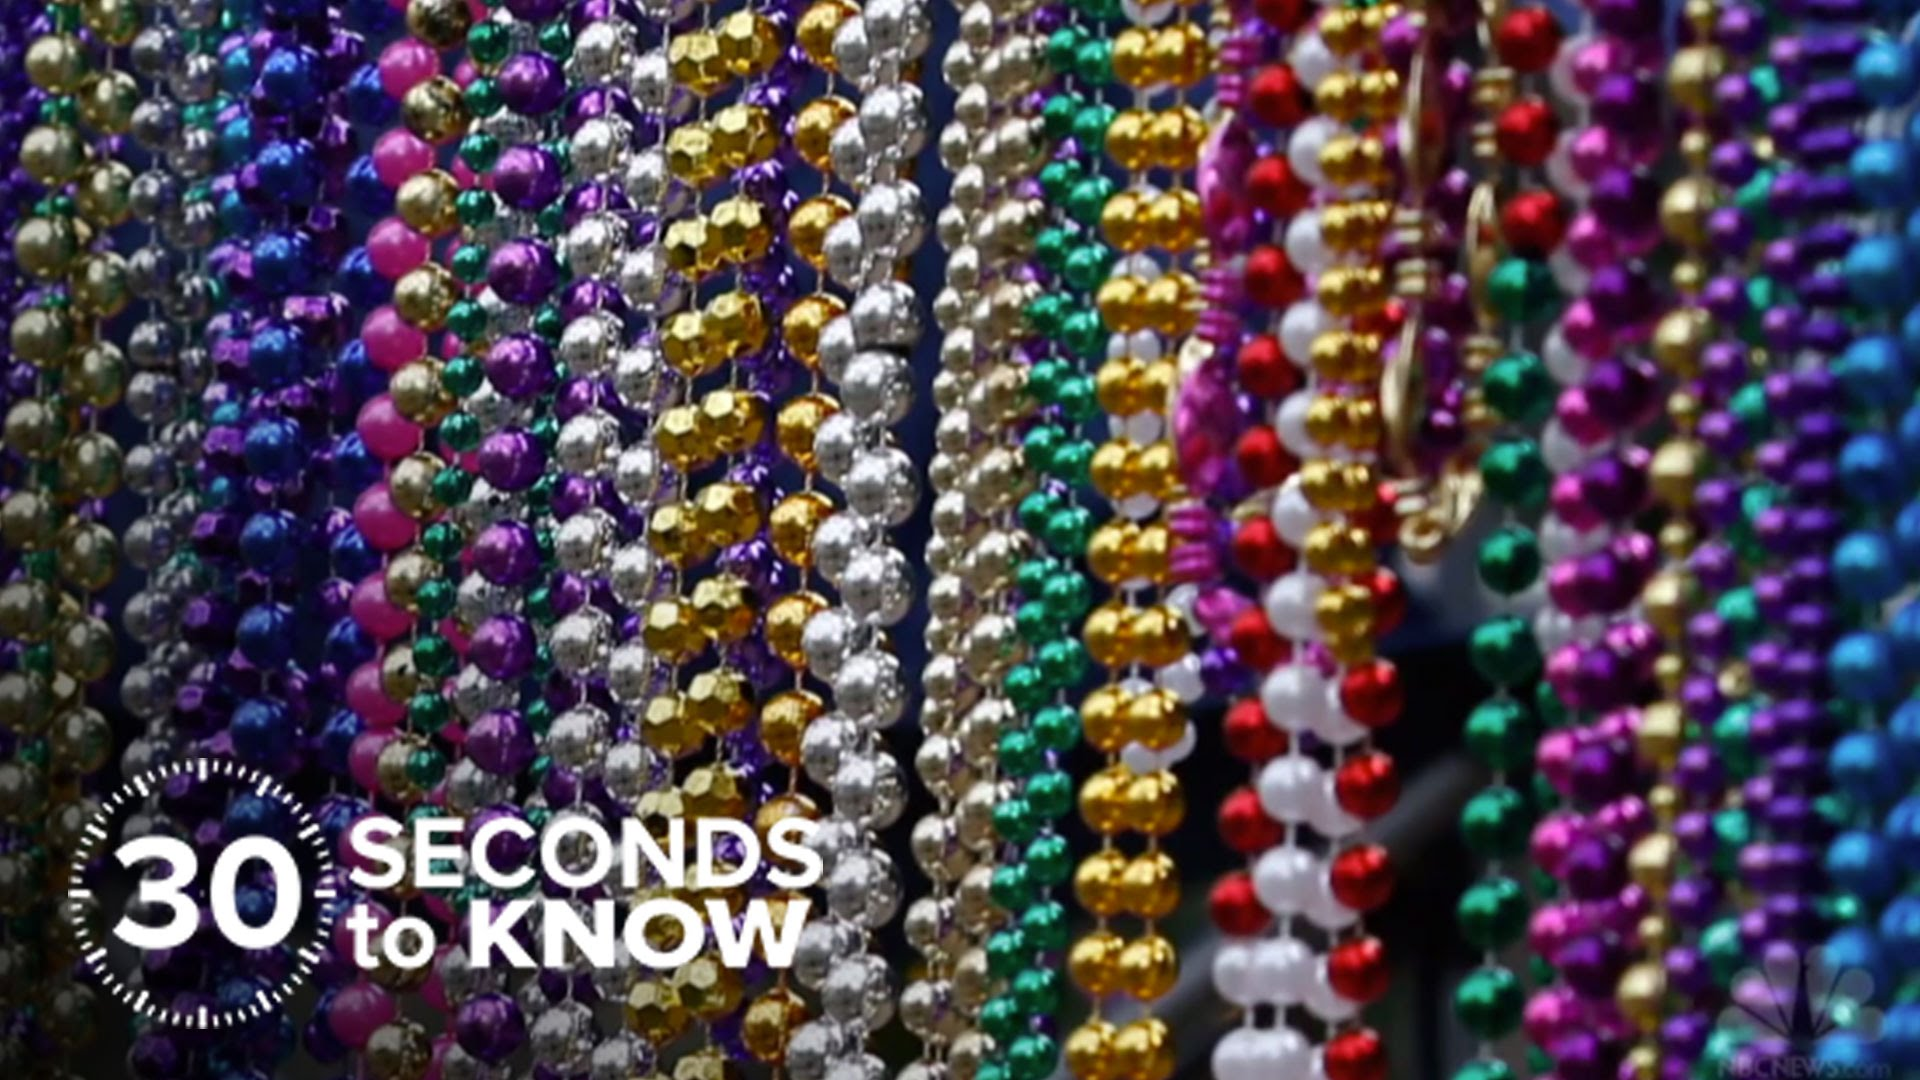 Where To Get Mardi Gras Beads In Chicago